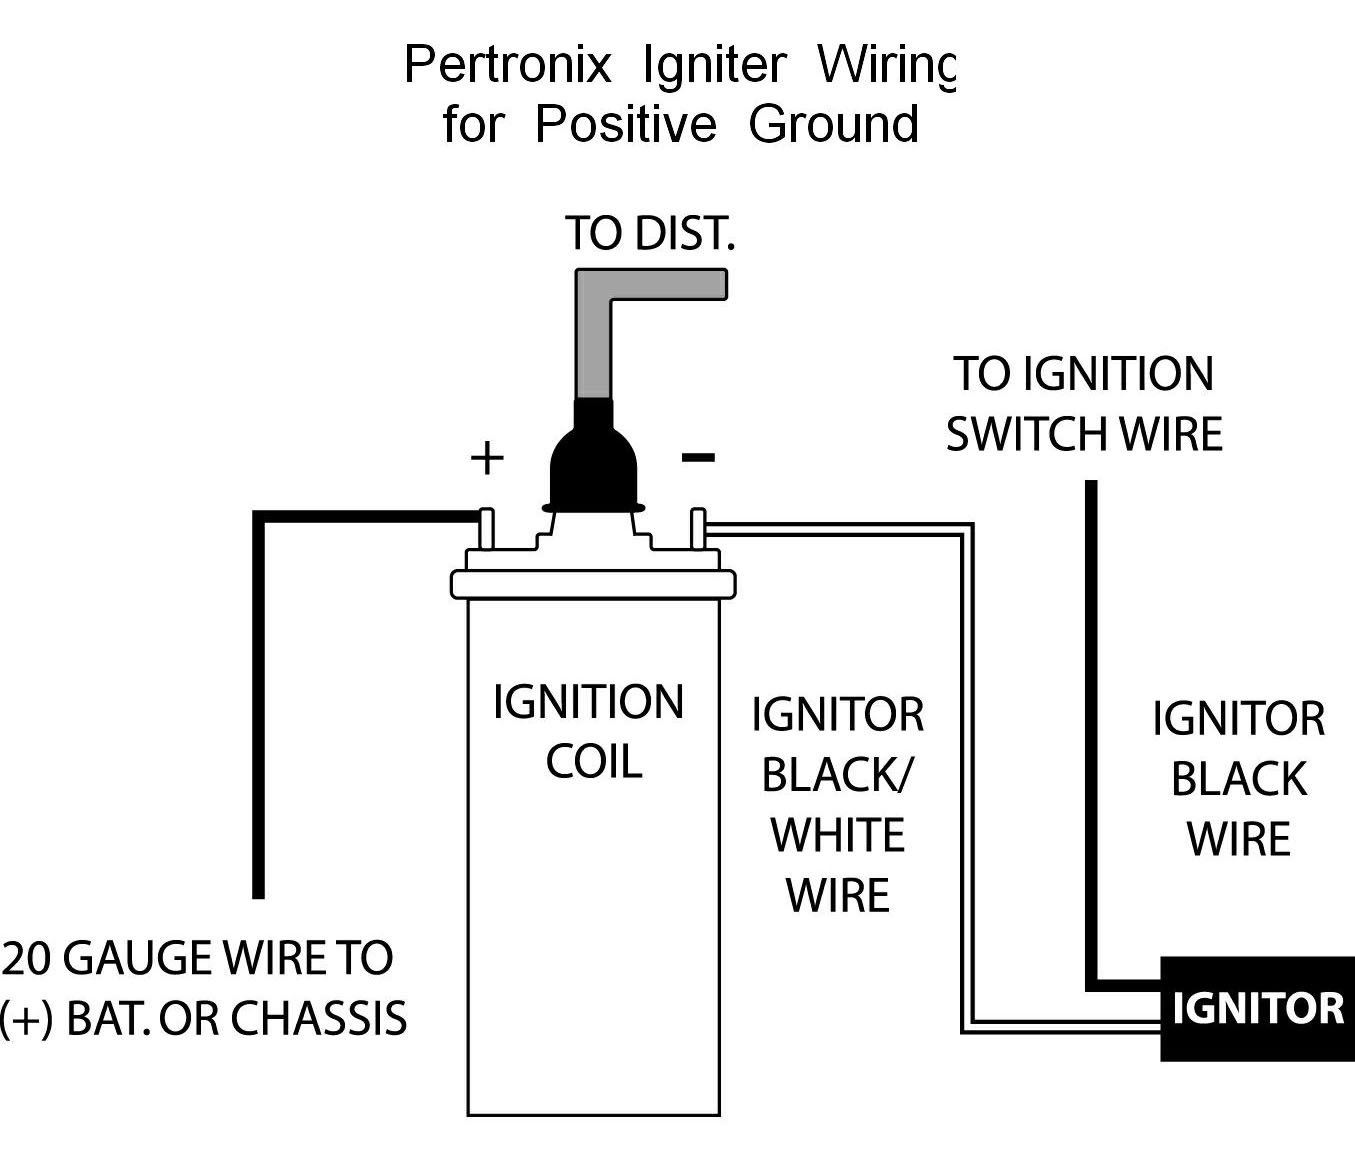 PerPosGndWiring pertronix positive ground wiring coil resistor wiring diagram at soozxer.org